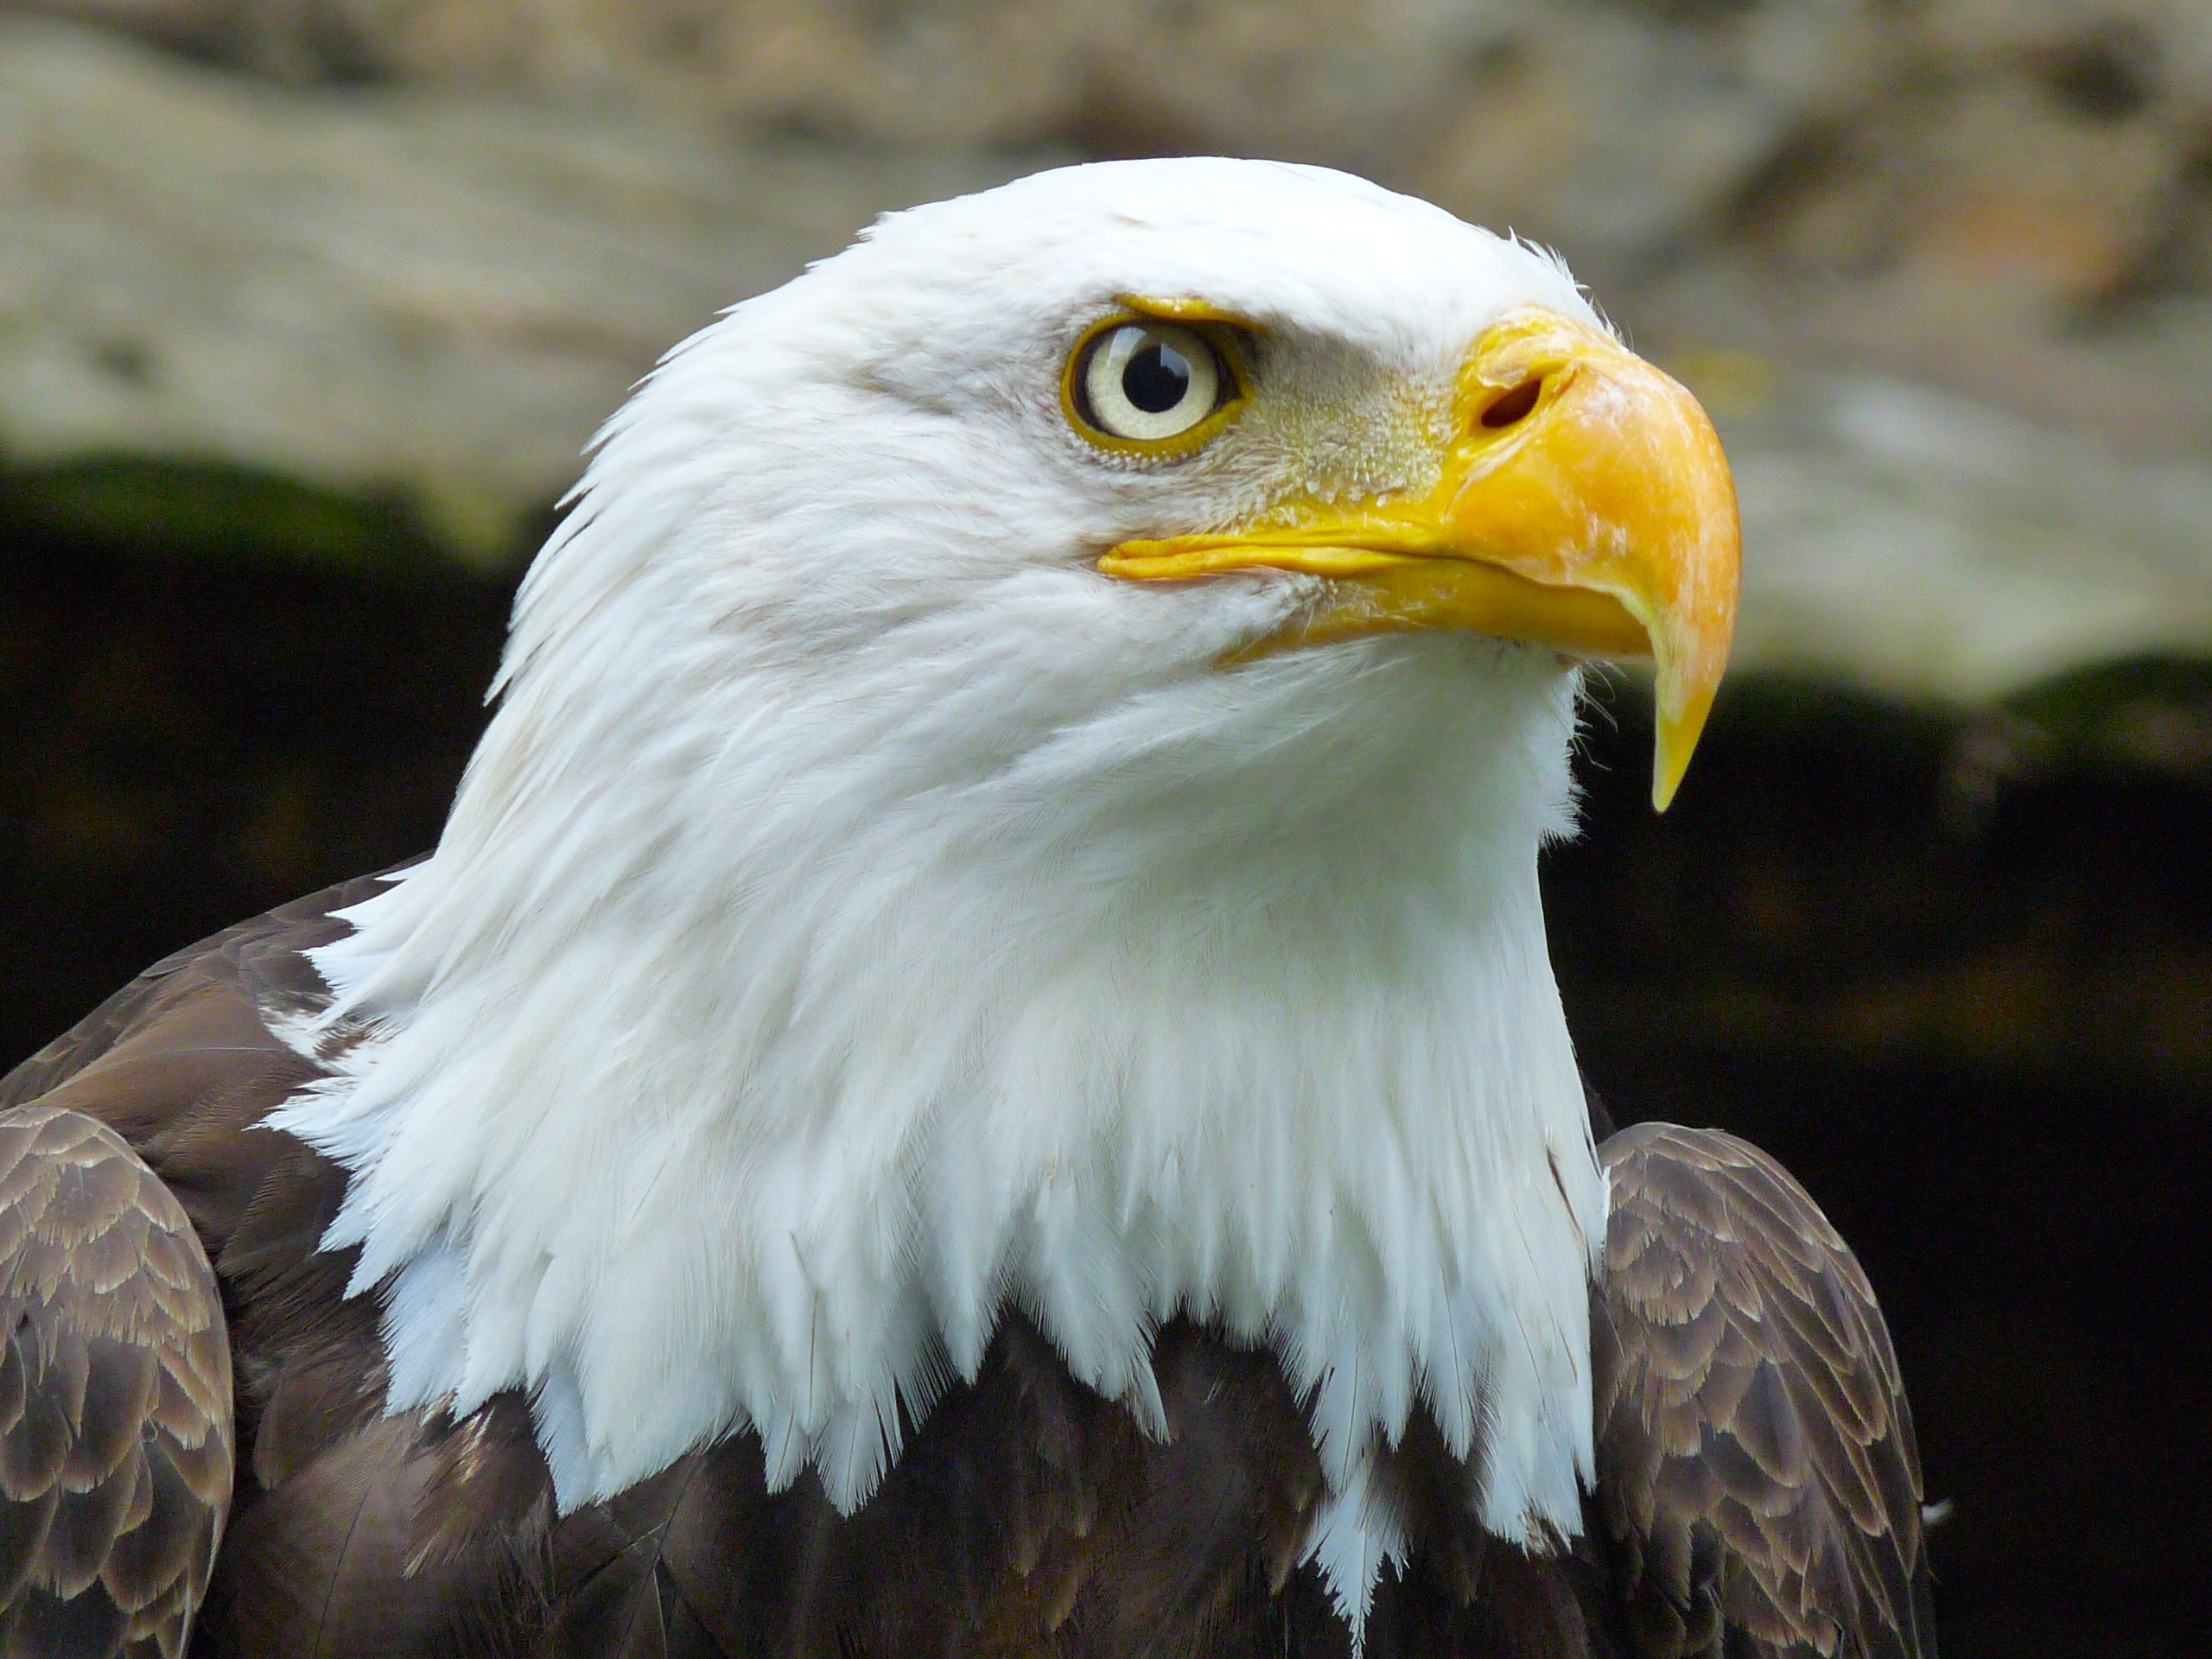 Macro of a bald eagle looking up